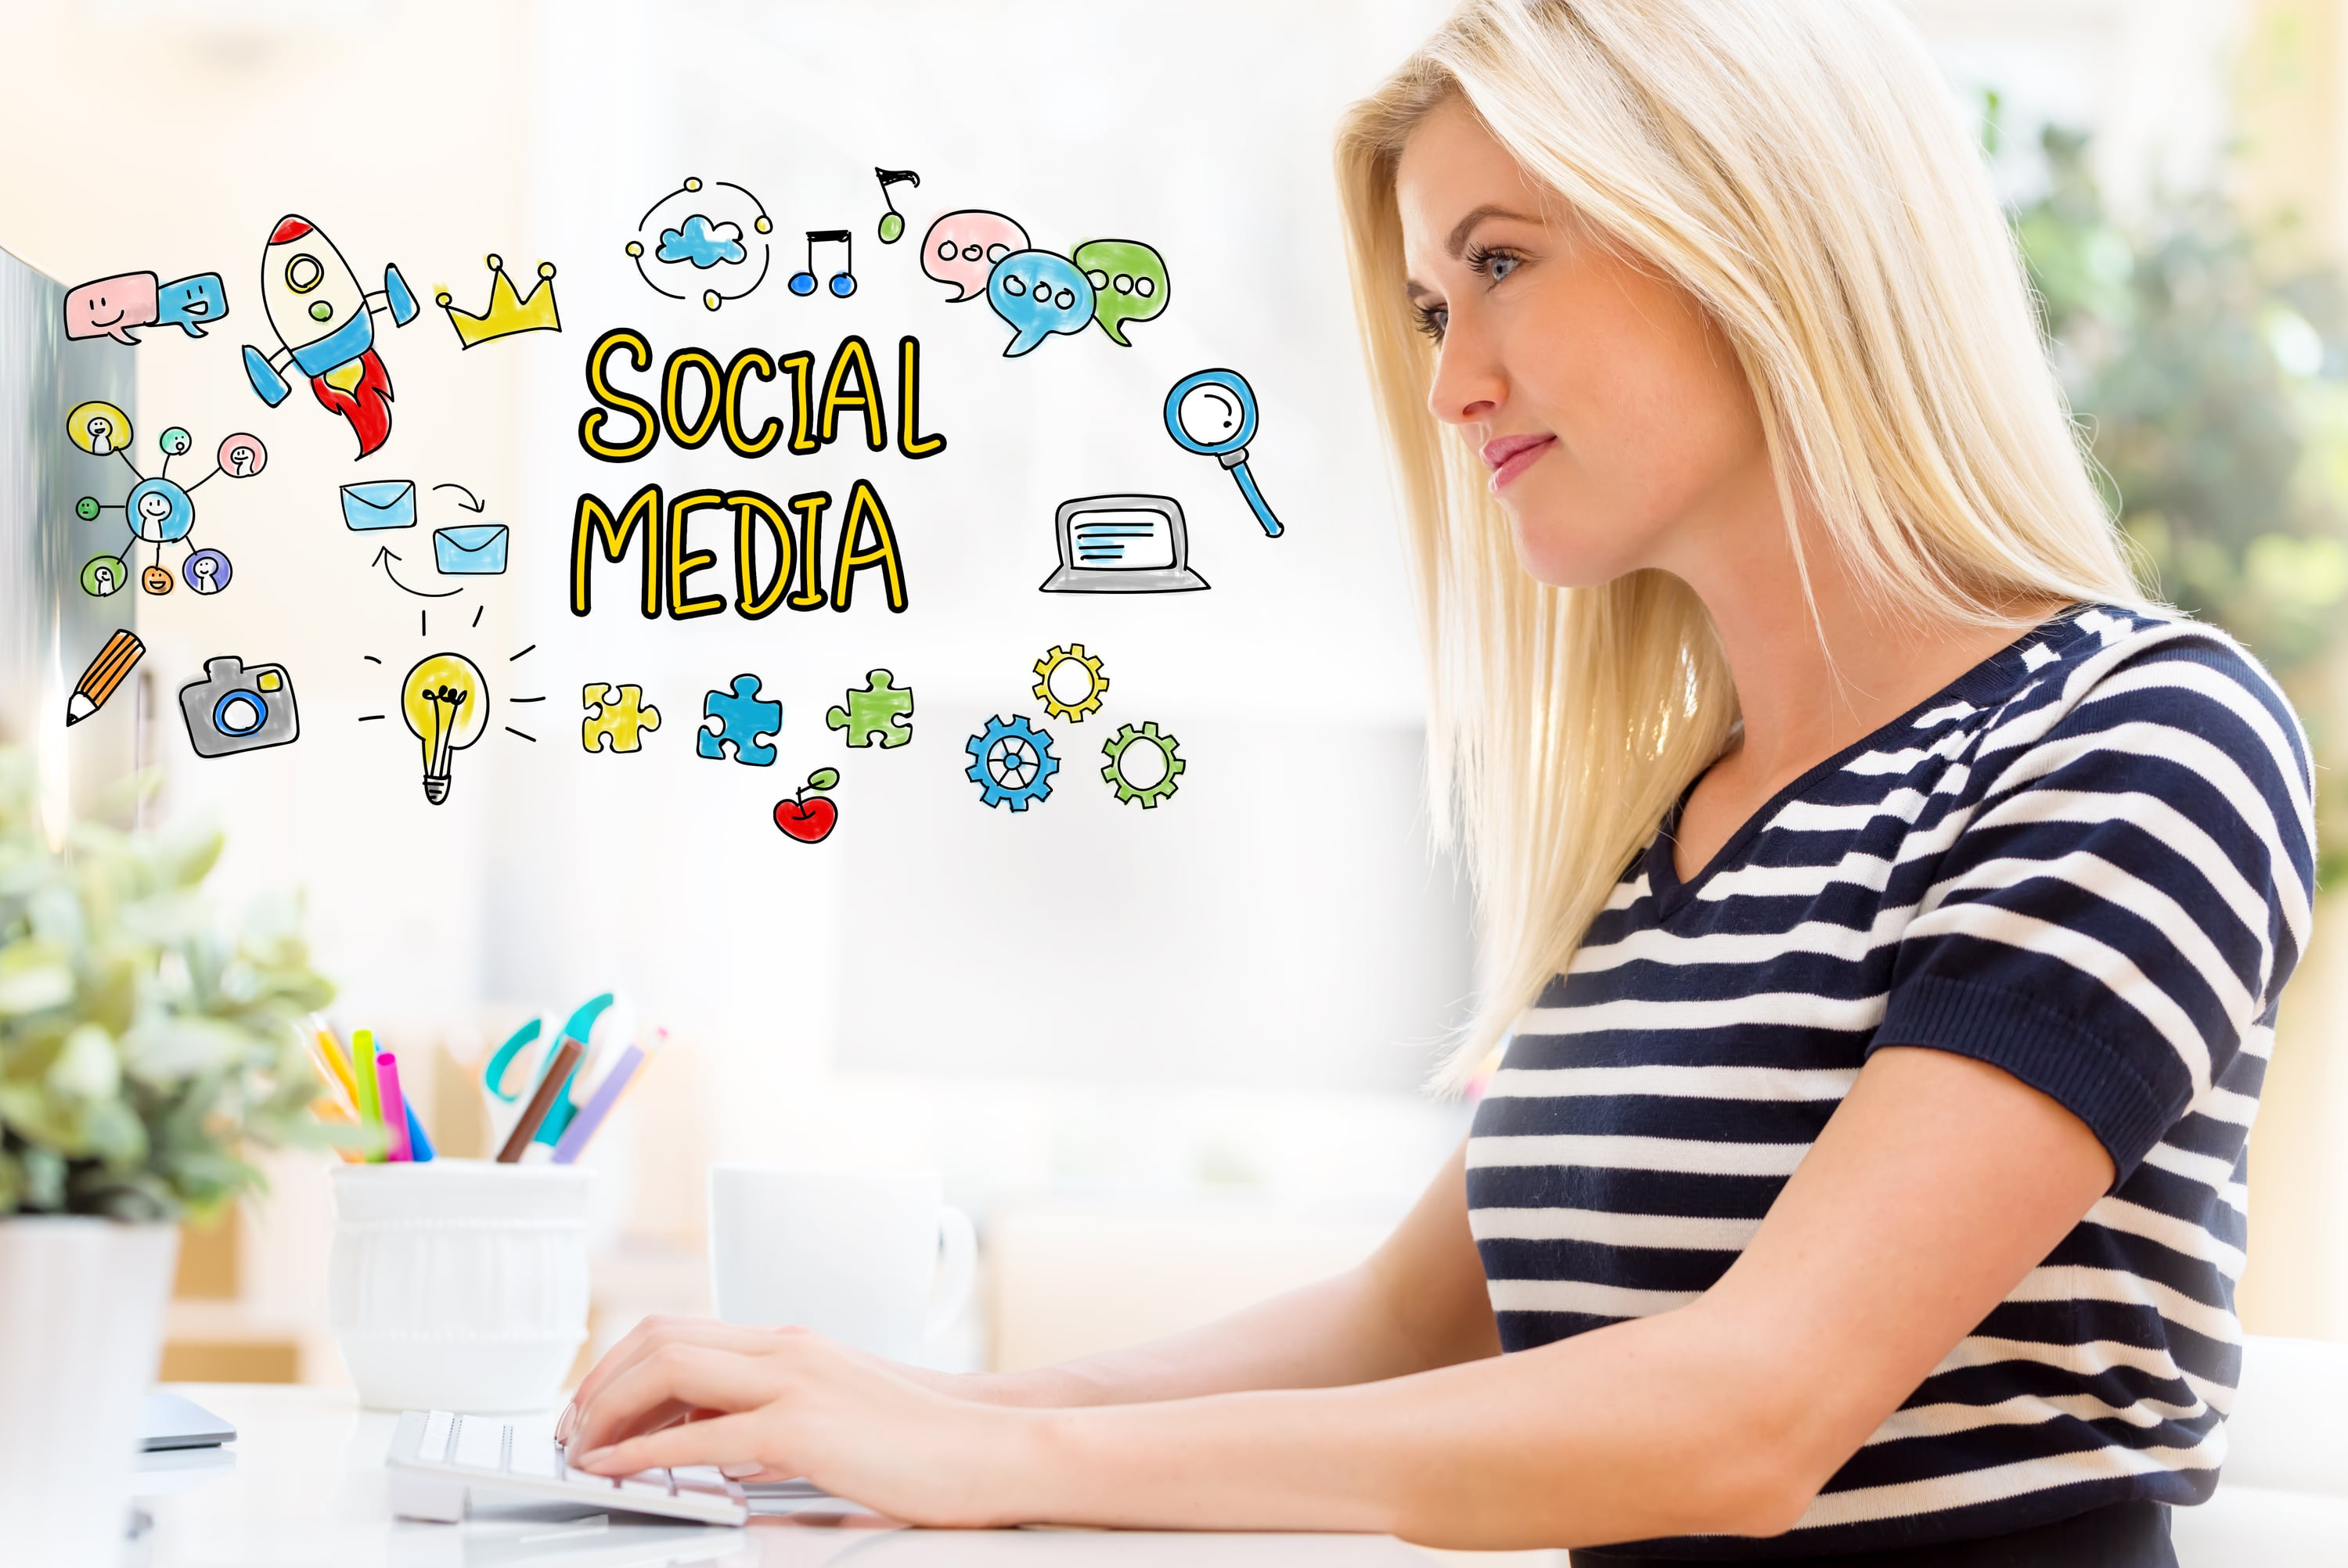 How to Use Social Media Marketing Strategy to Increase Sales